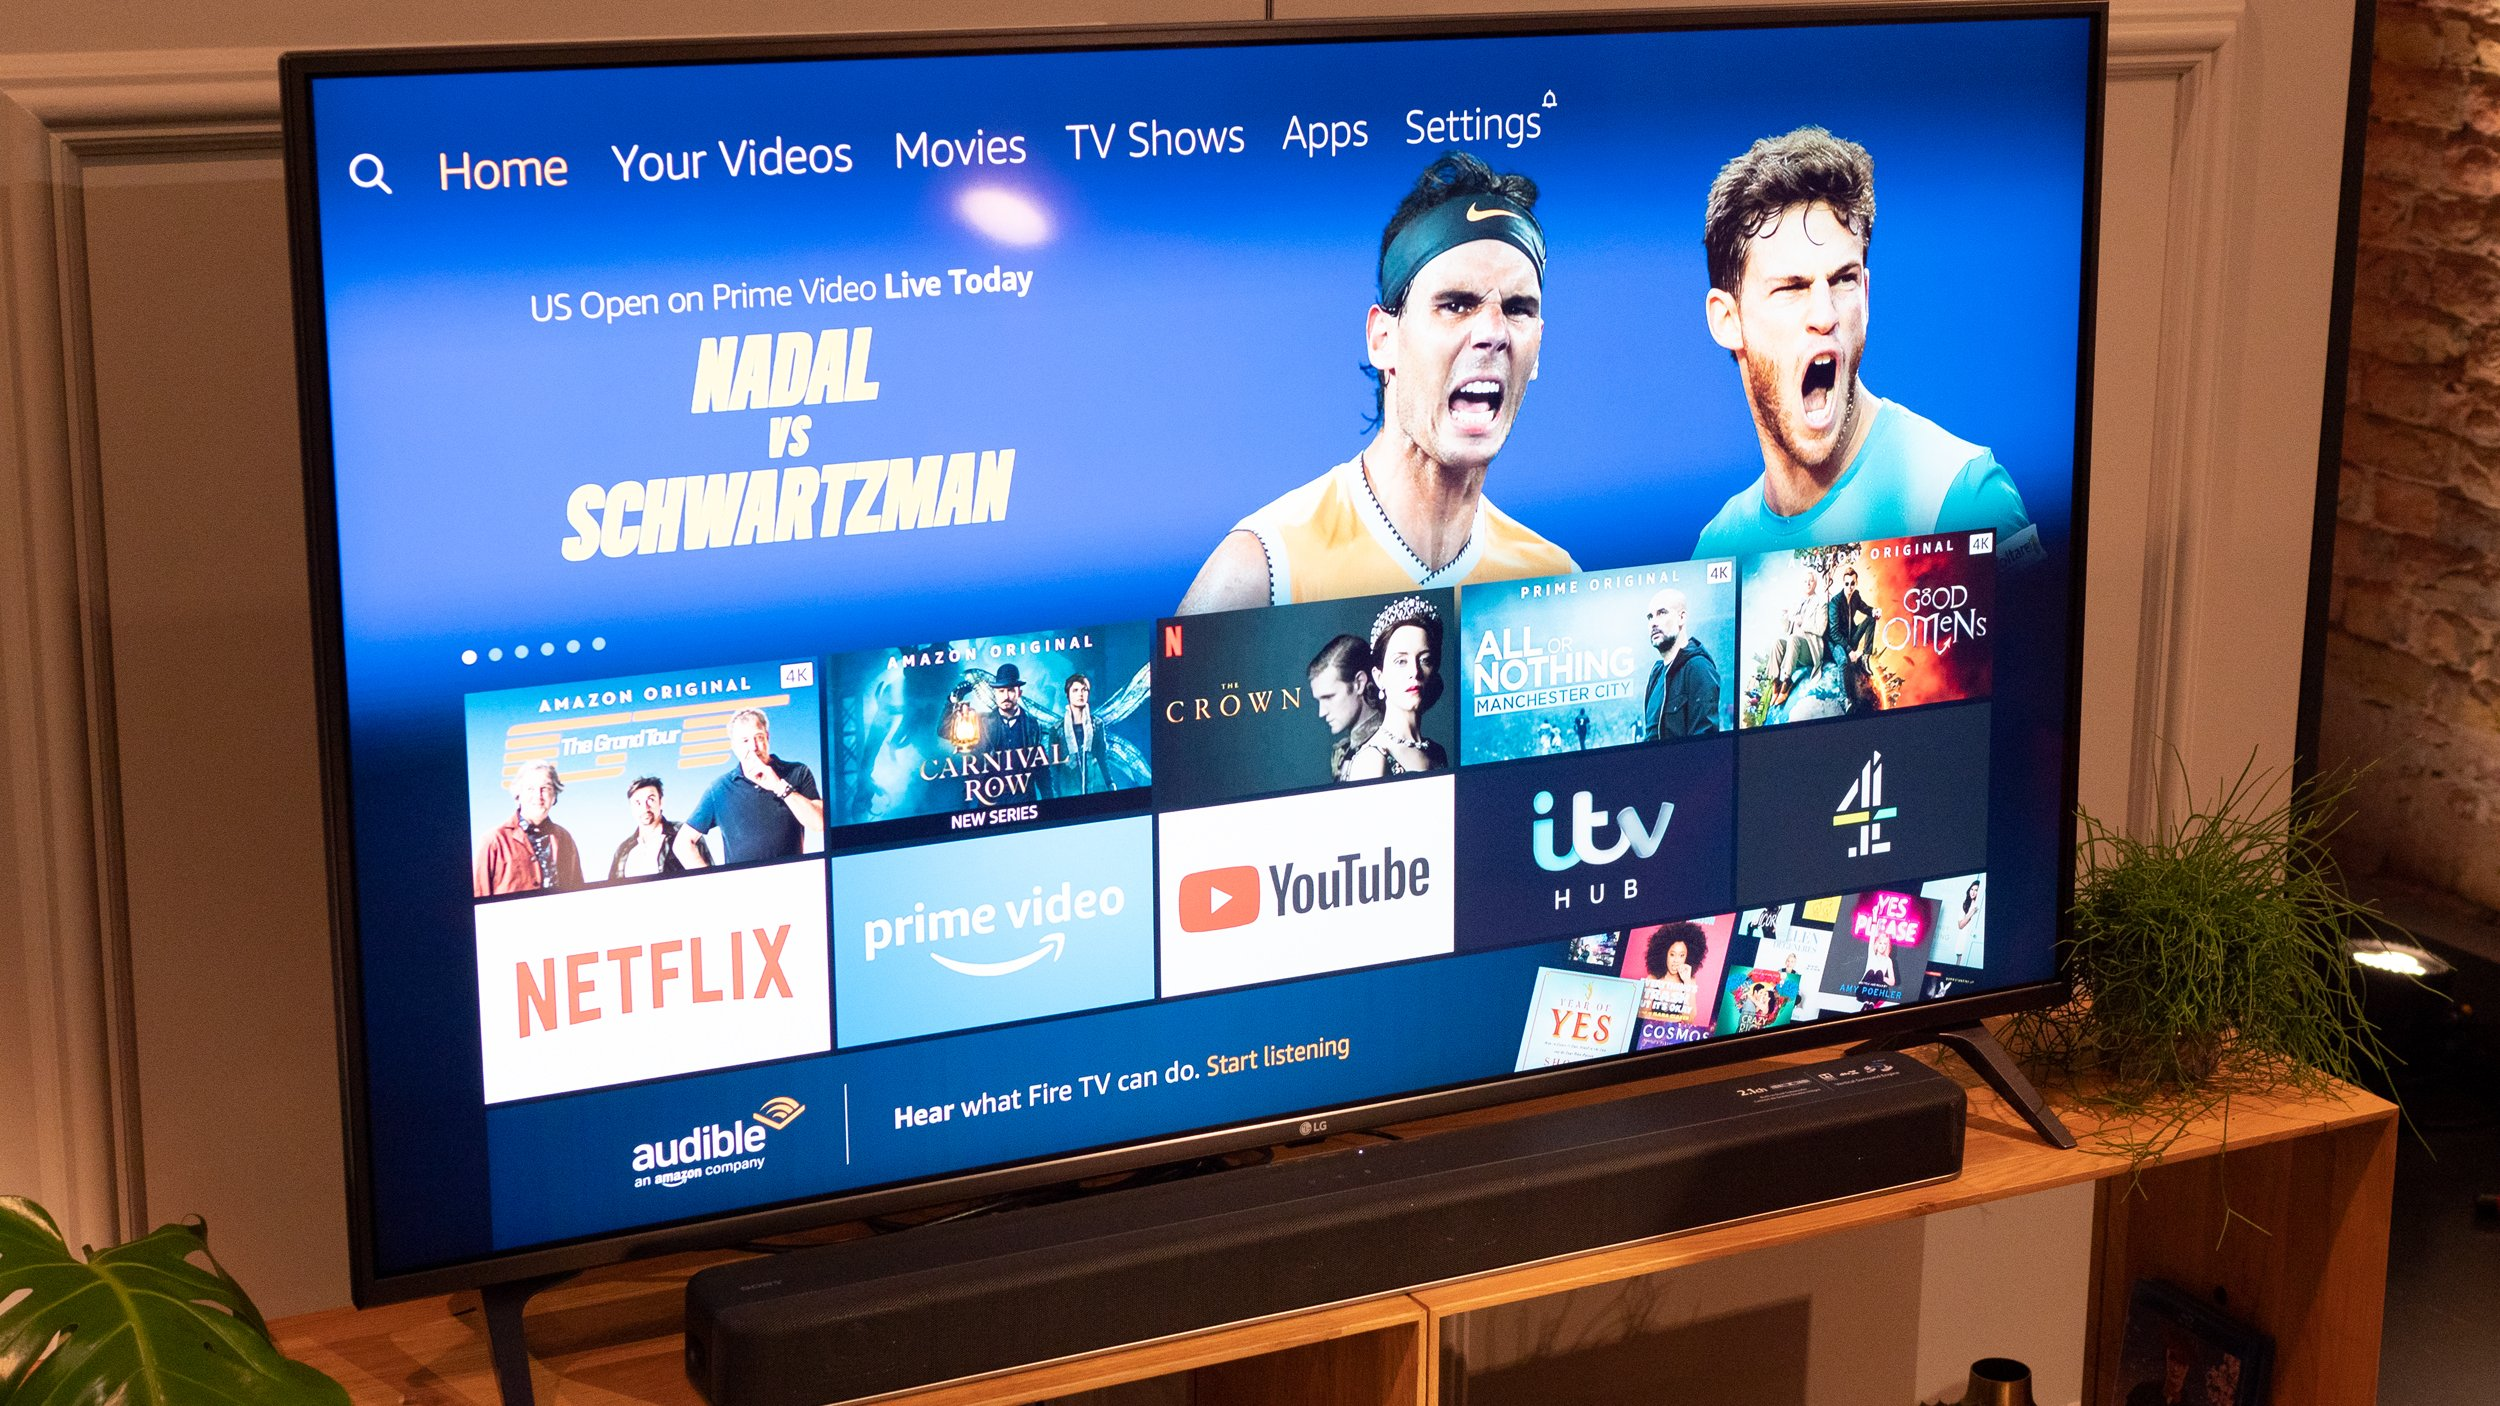 Amazon brings Fire TV Edition TVs to UK, launches Fire TV